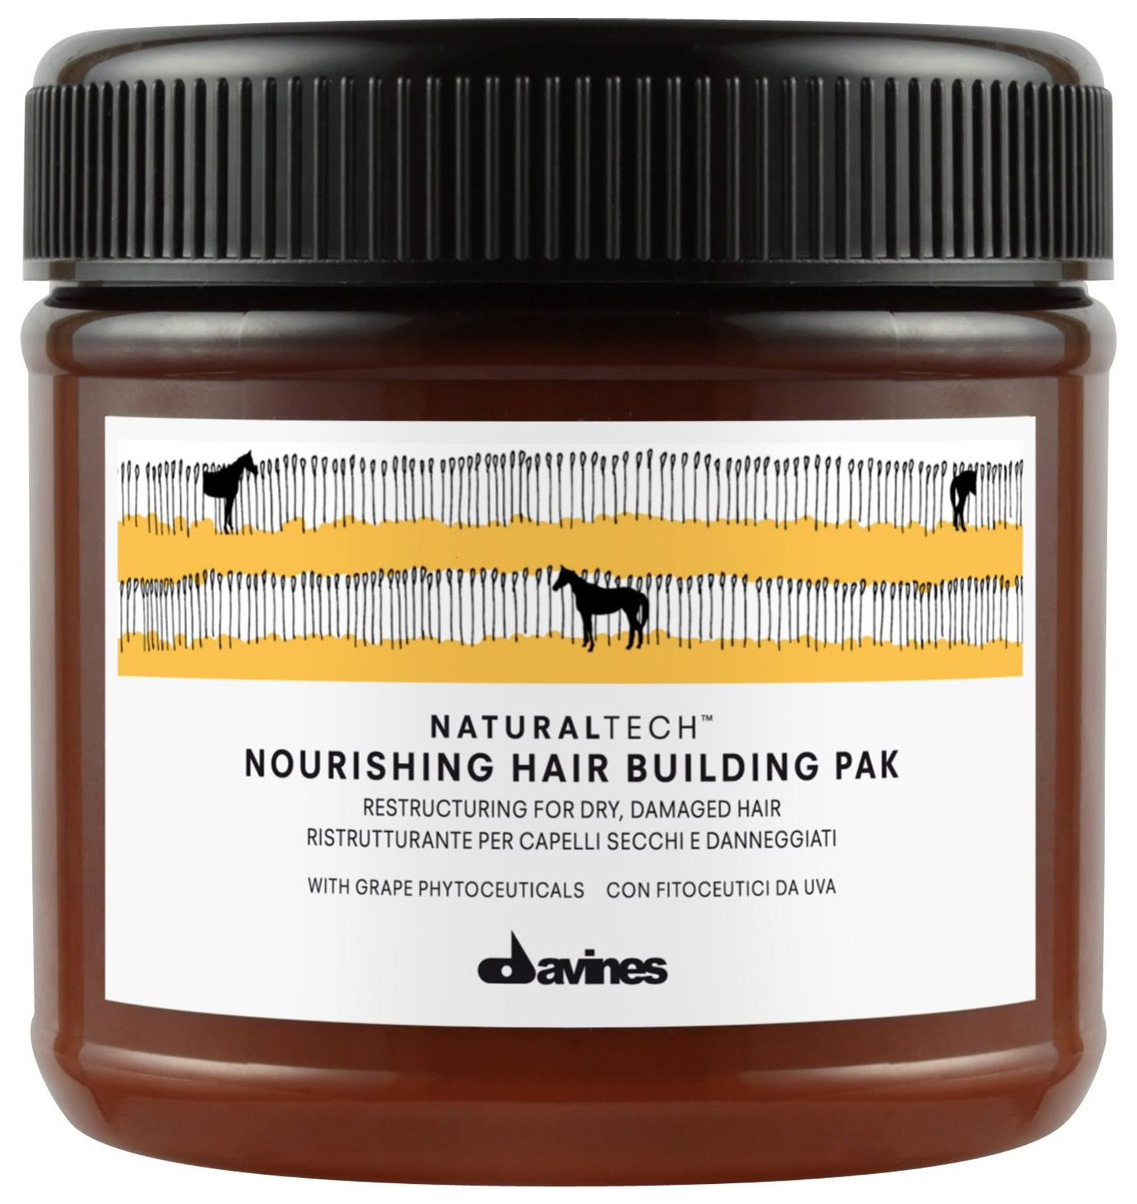 DAVINES NATURALTECH NOURISHING HAIR BUILDING PAK